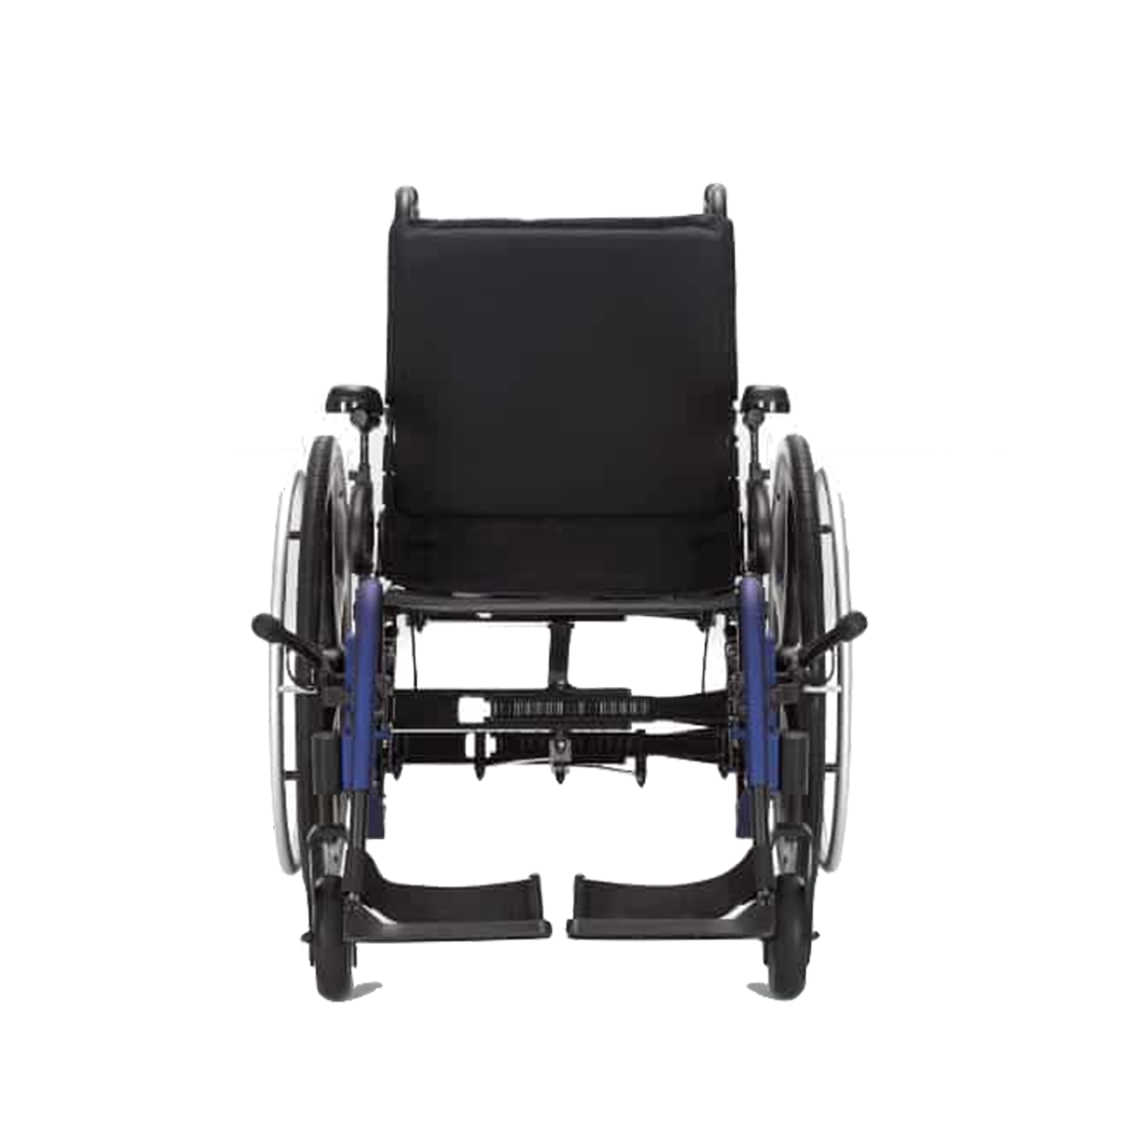 Ki mobility Liberty FT wheelchair front view